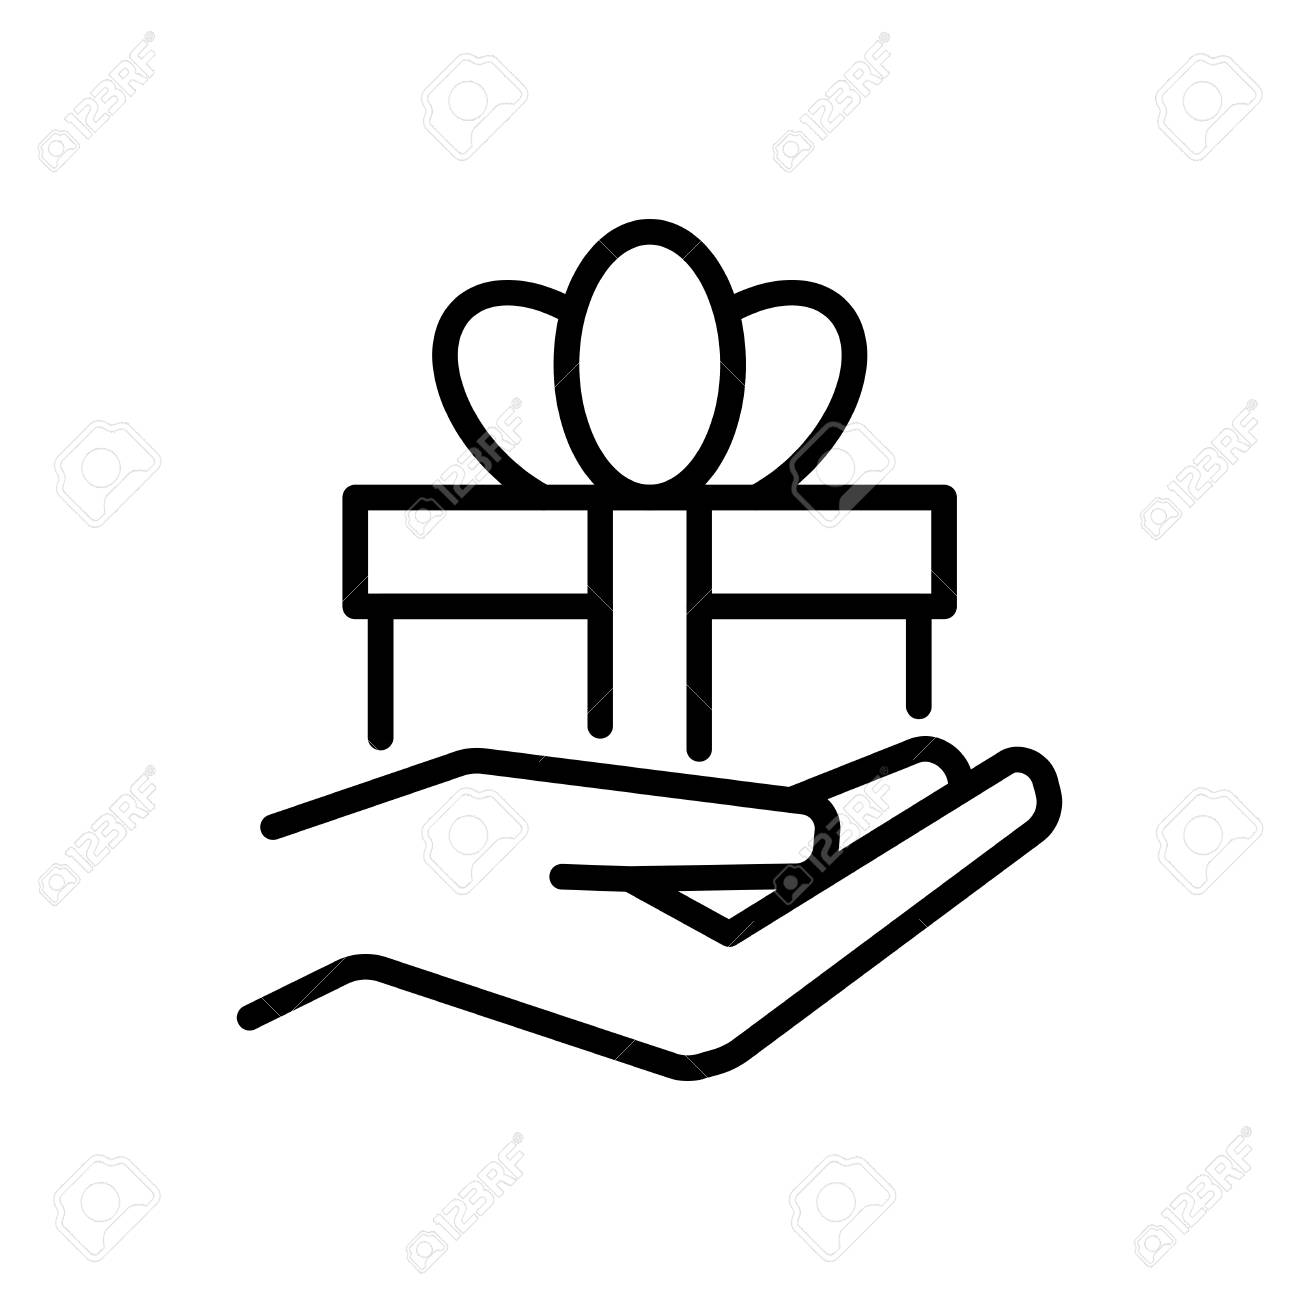 Gift giving icon in outline style royalty free cliparts vectors gift giving icon in outline style stock vector 84778587 negle Choice Image